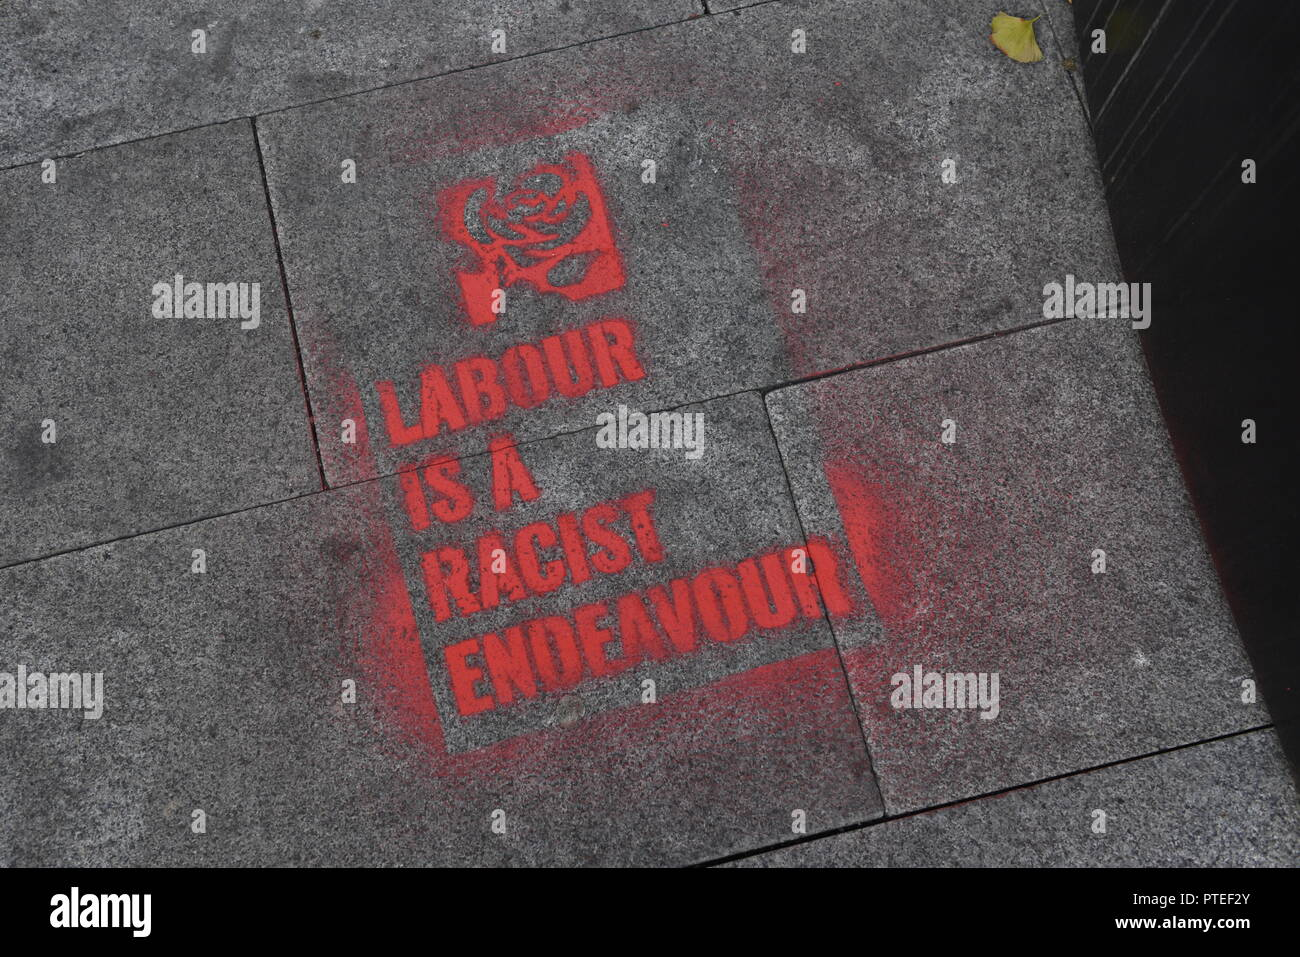 Labour is a racist endeavour - stencil sprayed on a pavement outside the Labour Party Conference 2018 in Liverpool, England, UK - Stock Image